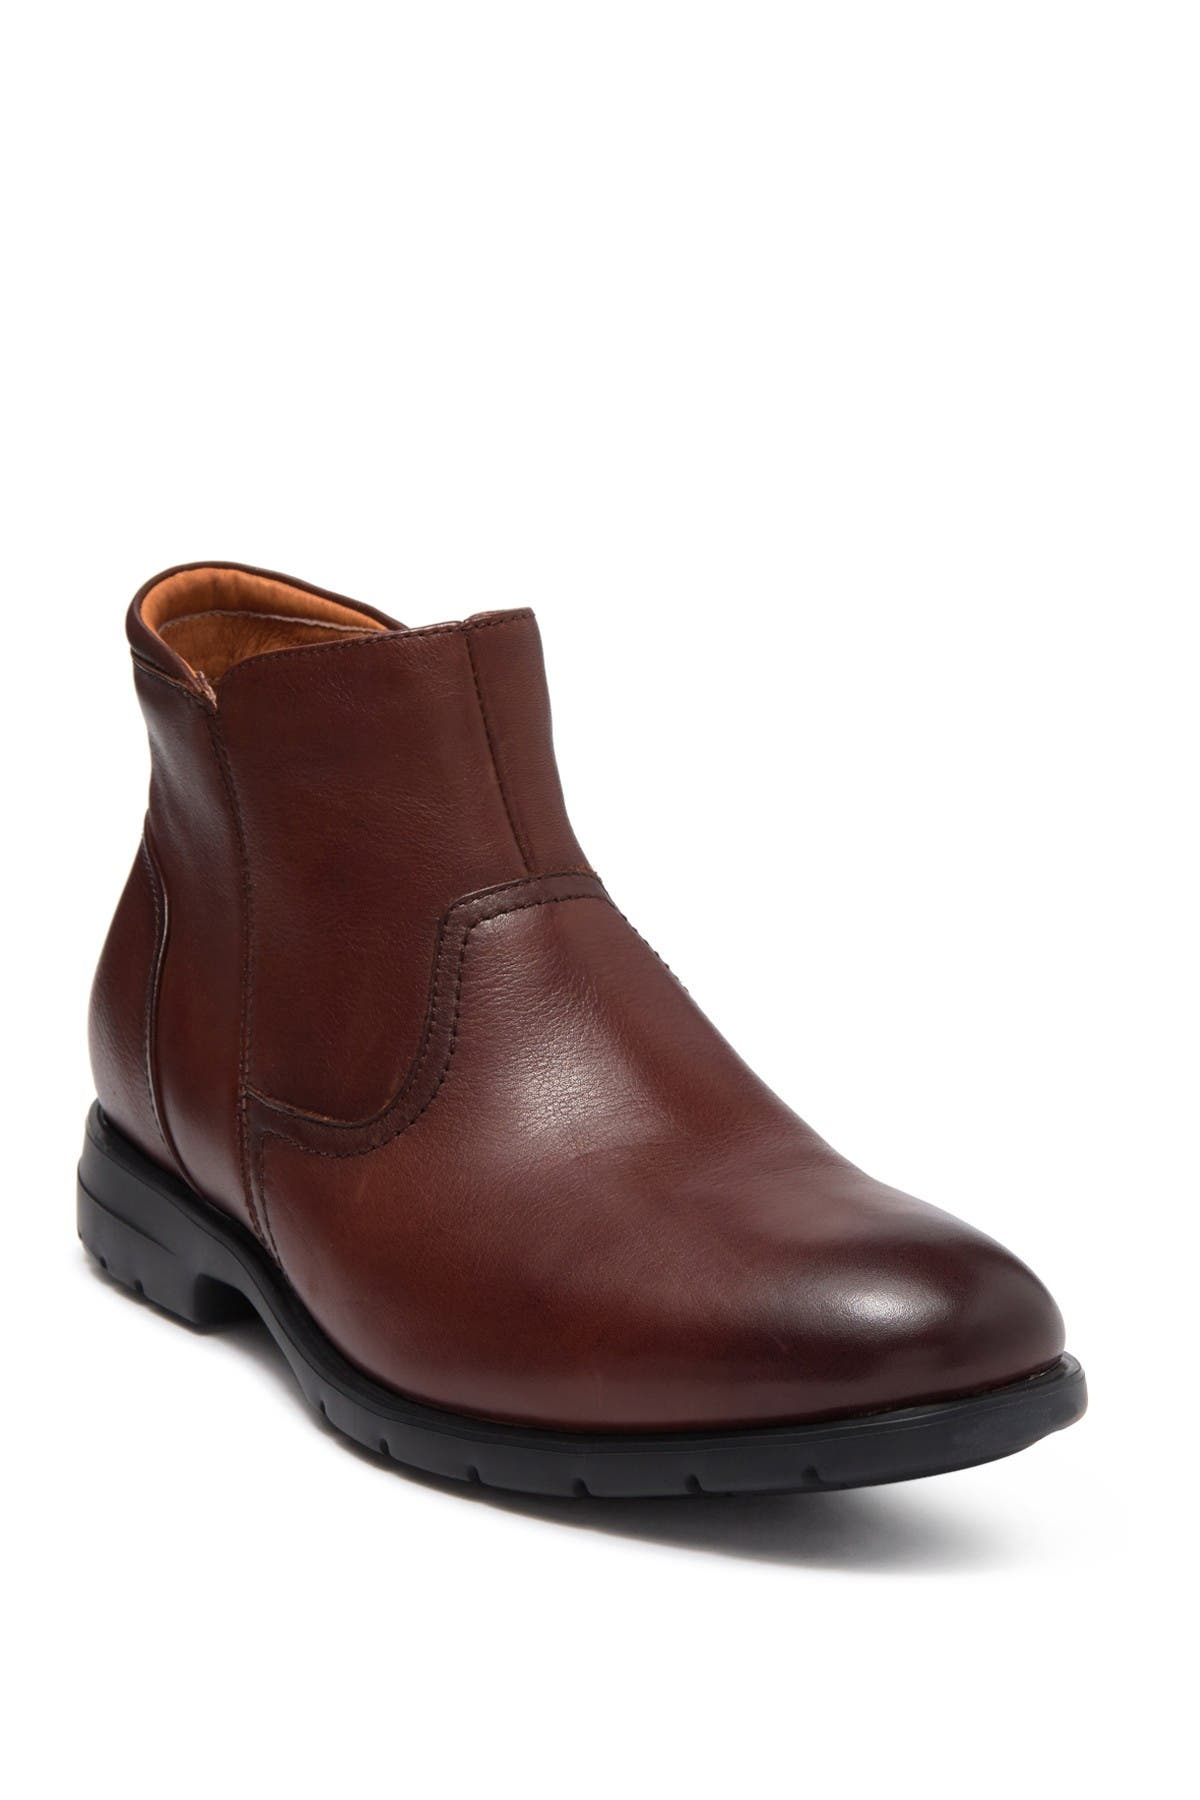 Image of Florsheim Westside Zip Leather Boot